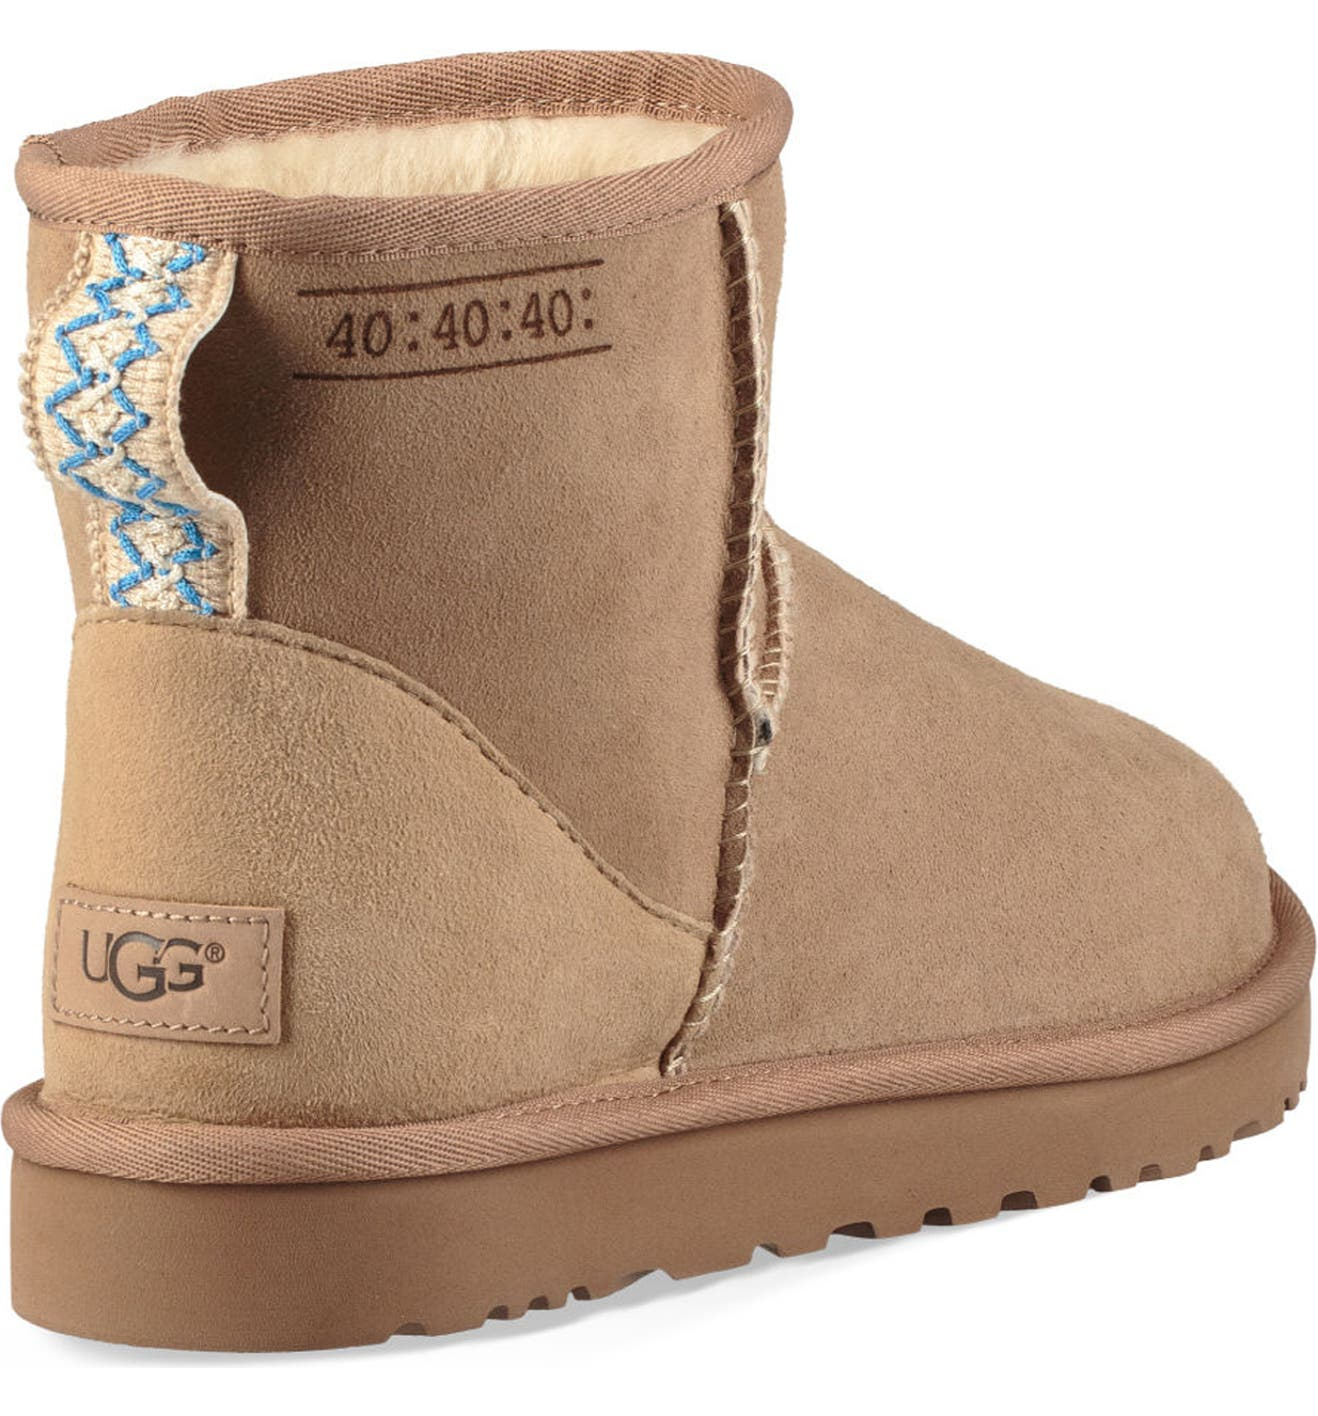 a8bef1170a3 UGG® Classic Mini 40:40:40 Anniversary Boot (Men) (Limited Edition ...